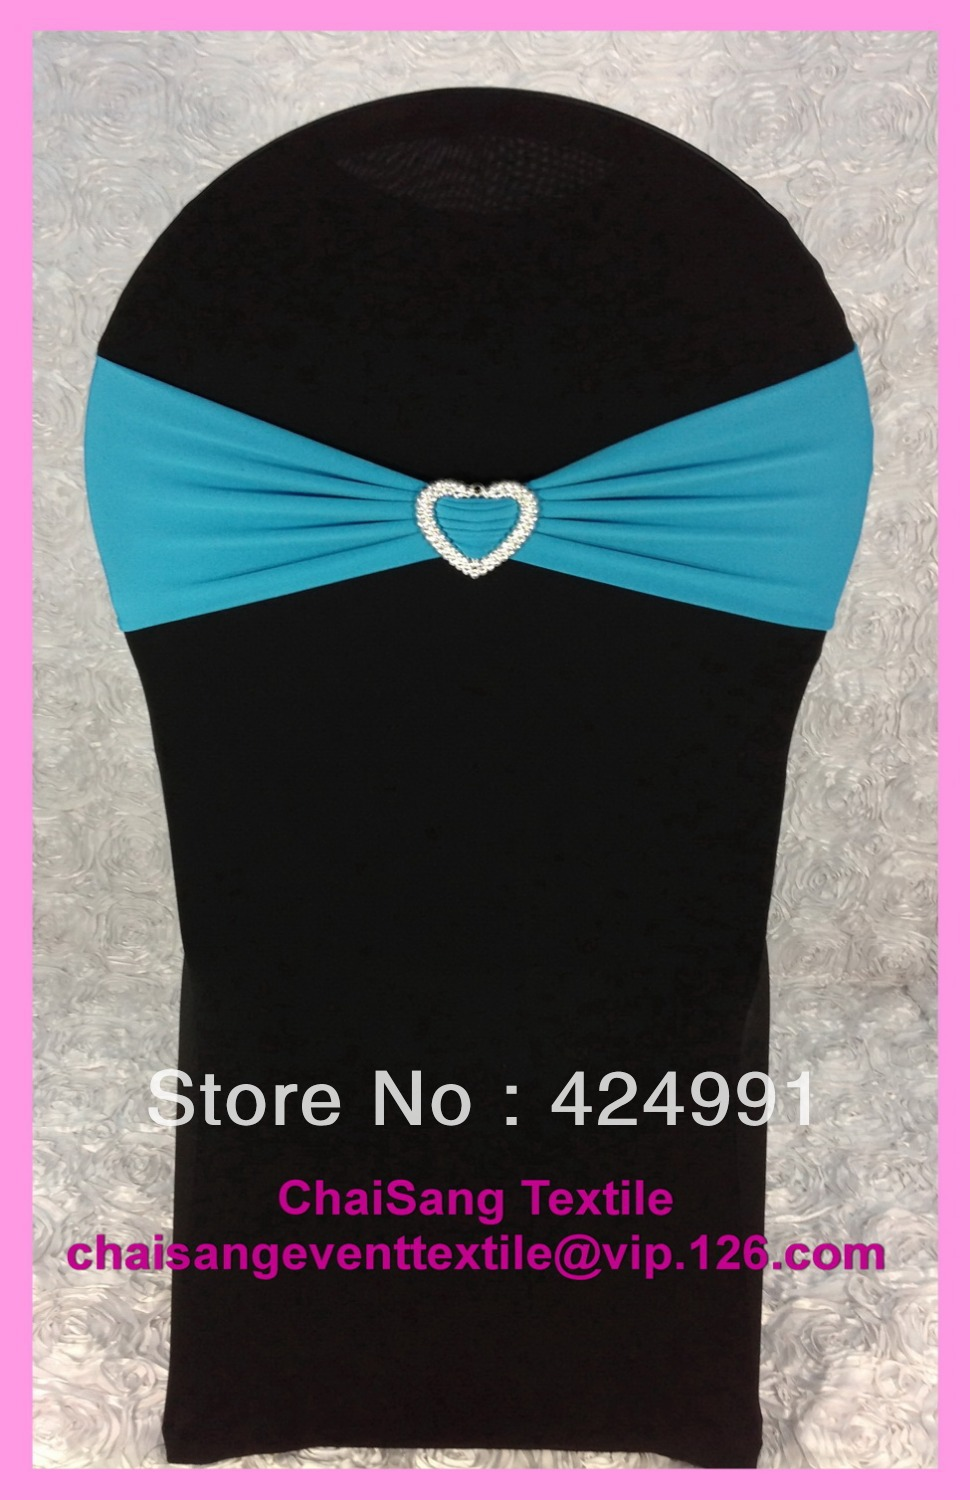 100pcs Turquoise Blue Wedding Lycra Chair Bands with Heart  : 100pcs Turquoise Blue Wedding Lycra Chair Bands with Heart Shape buckle chair cover Lycra Bands for from www.aliexpress.com size 970 x 1500 jpeg 237kB